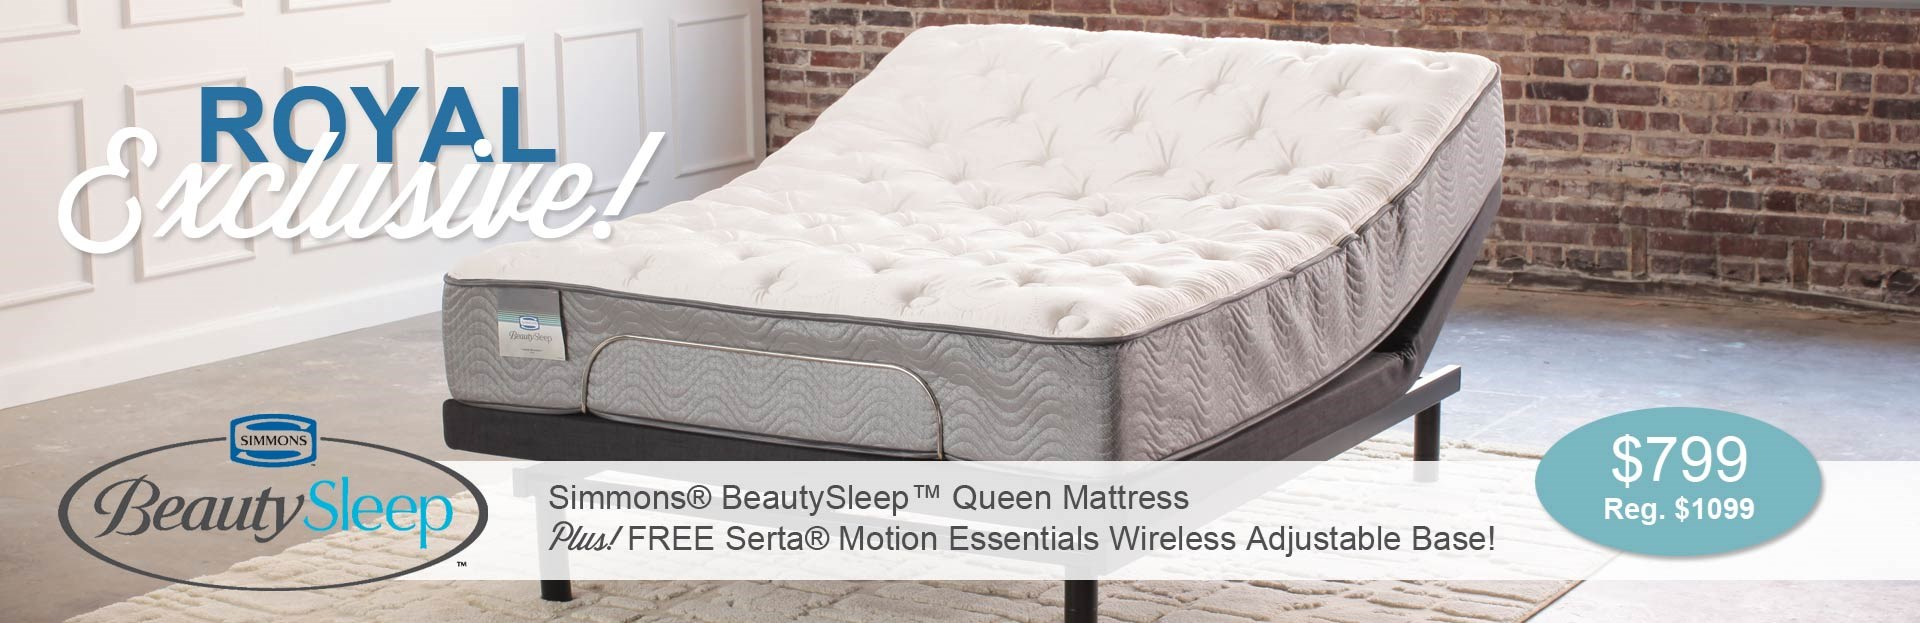 Simmons Mattress with Free Adjustable Base